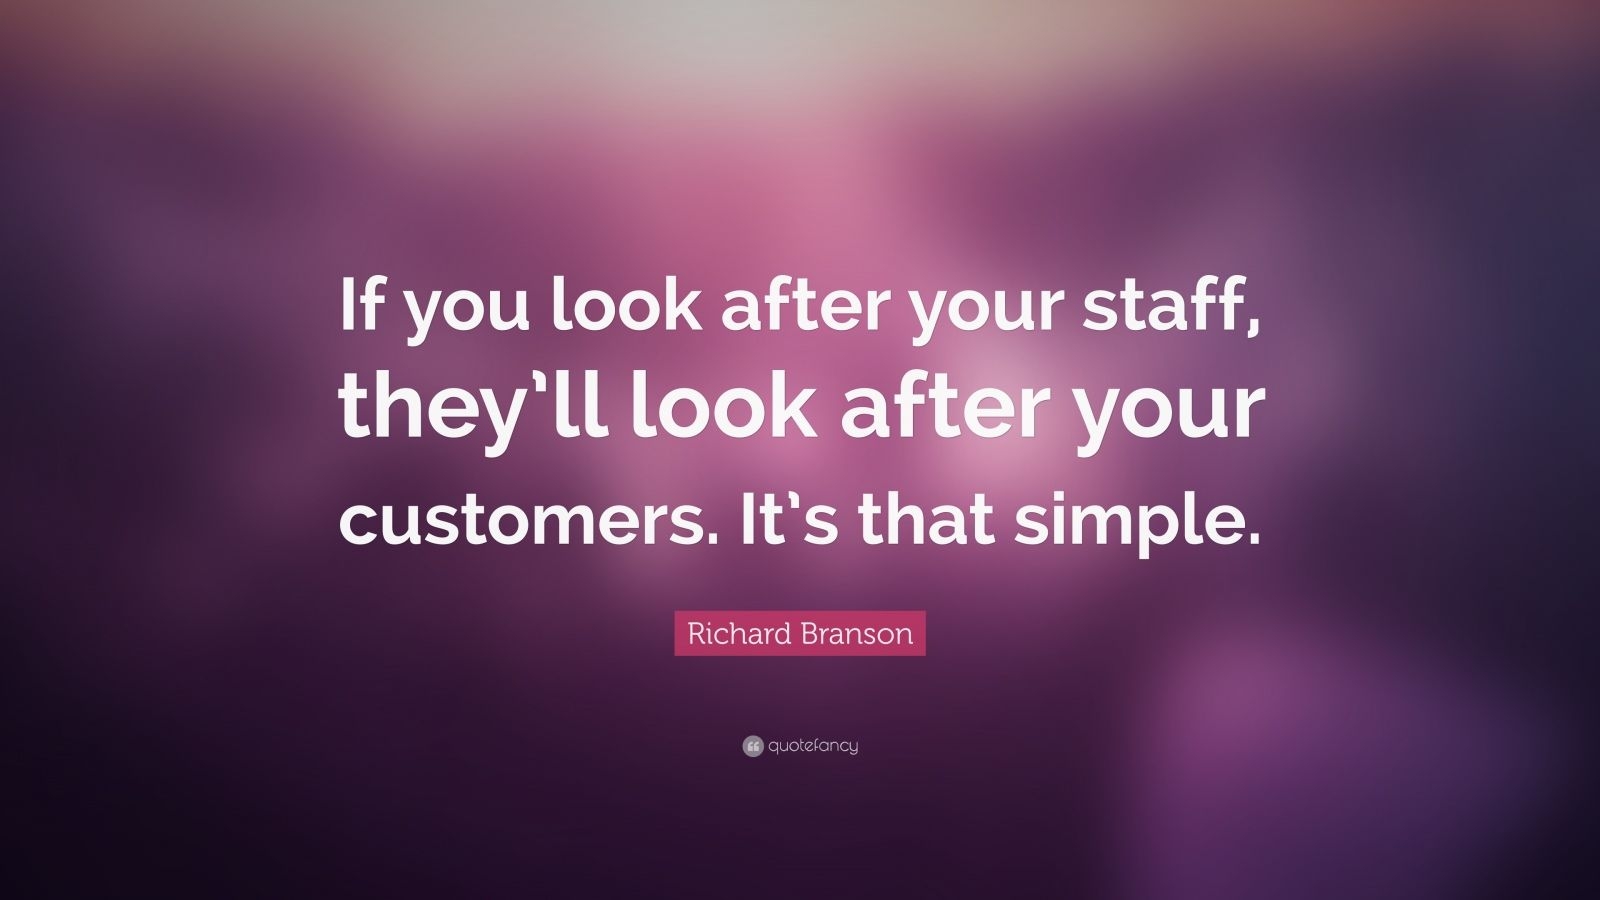 Elon Musk Quotes Wallpapers Richard Branson Quote If You Look After Your Staff They